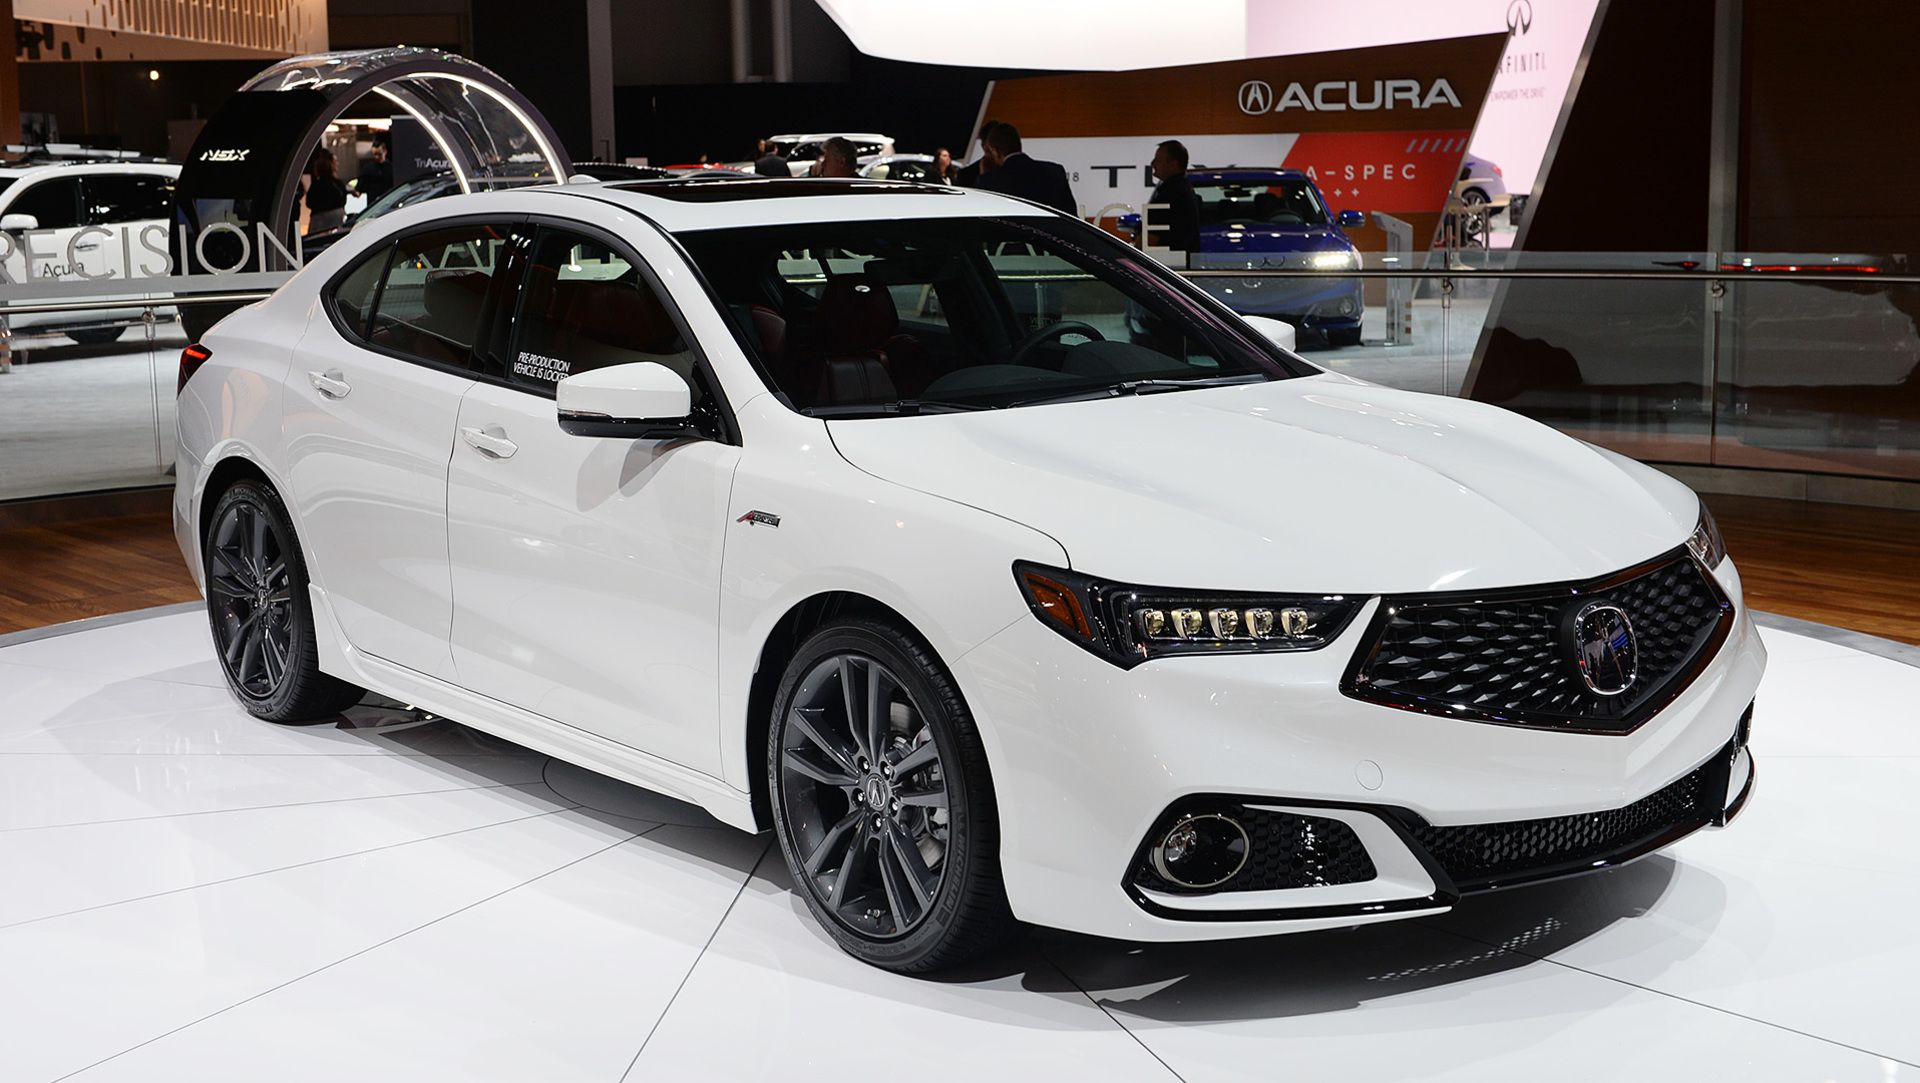 2018 Acura Tlx Gets Sporty A Spec Trim With Mid Cycle Refresh